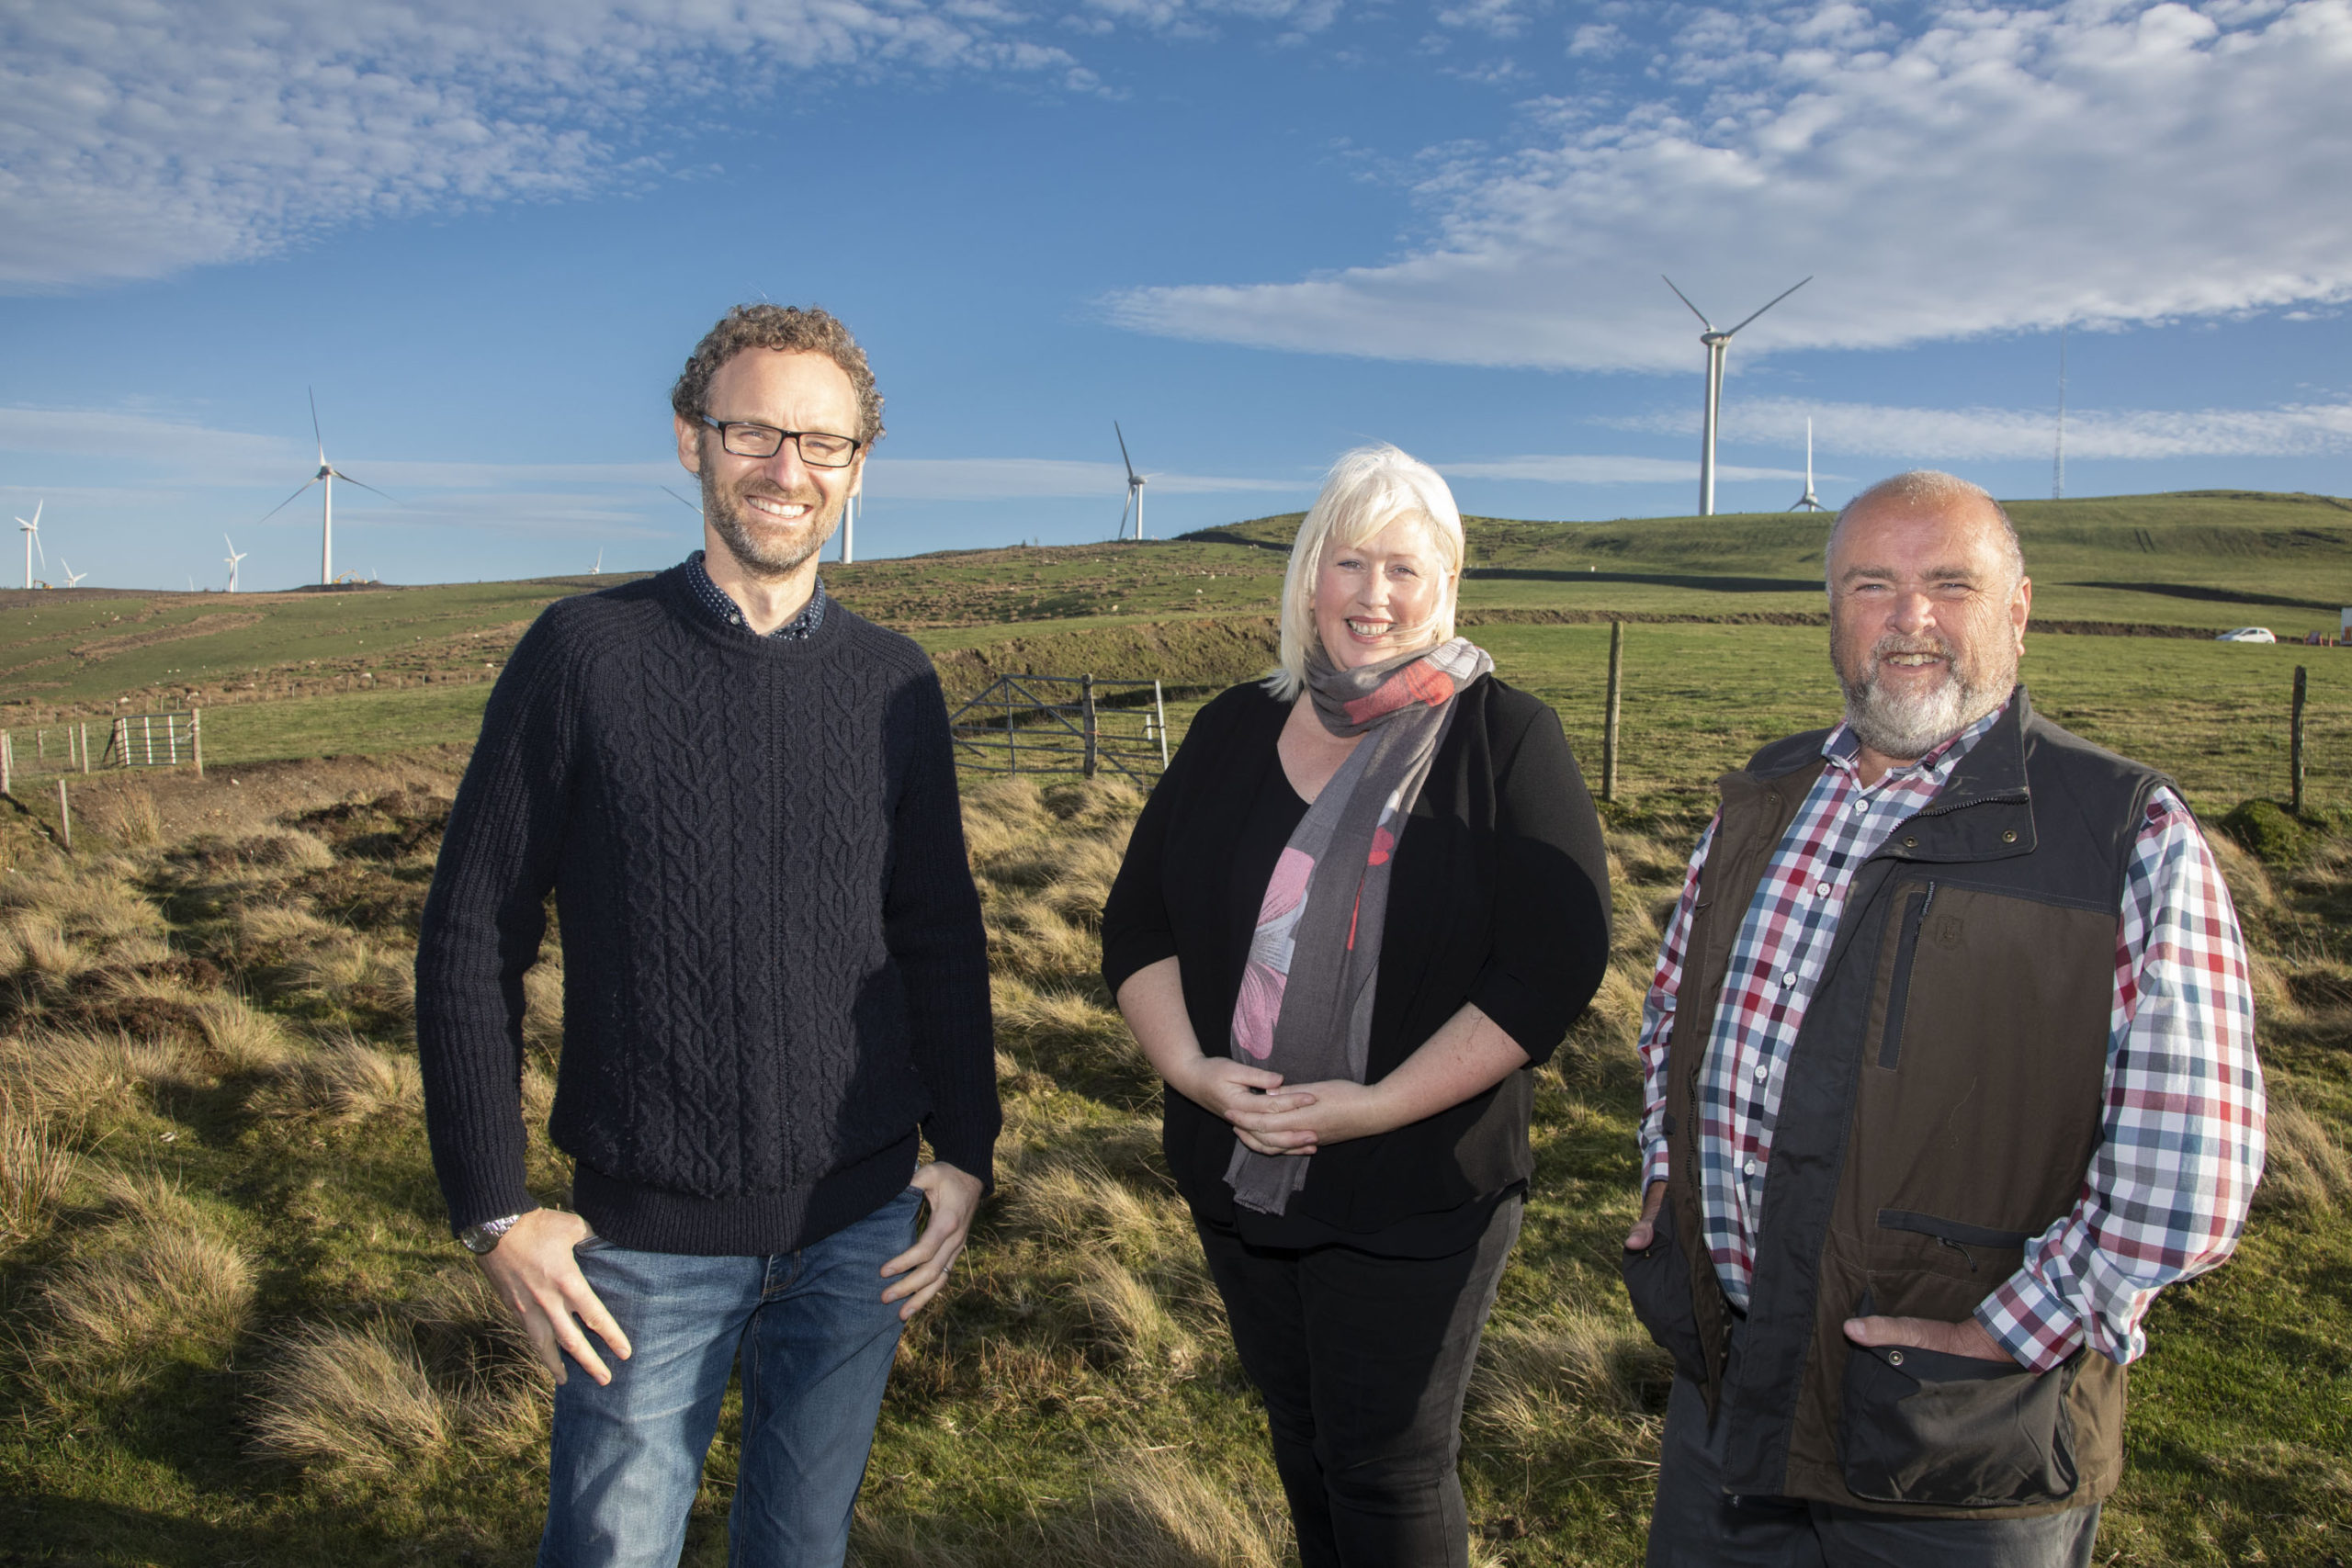 Time to cash in on £4 million windfarm windfall for rural Denbighshire